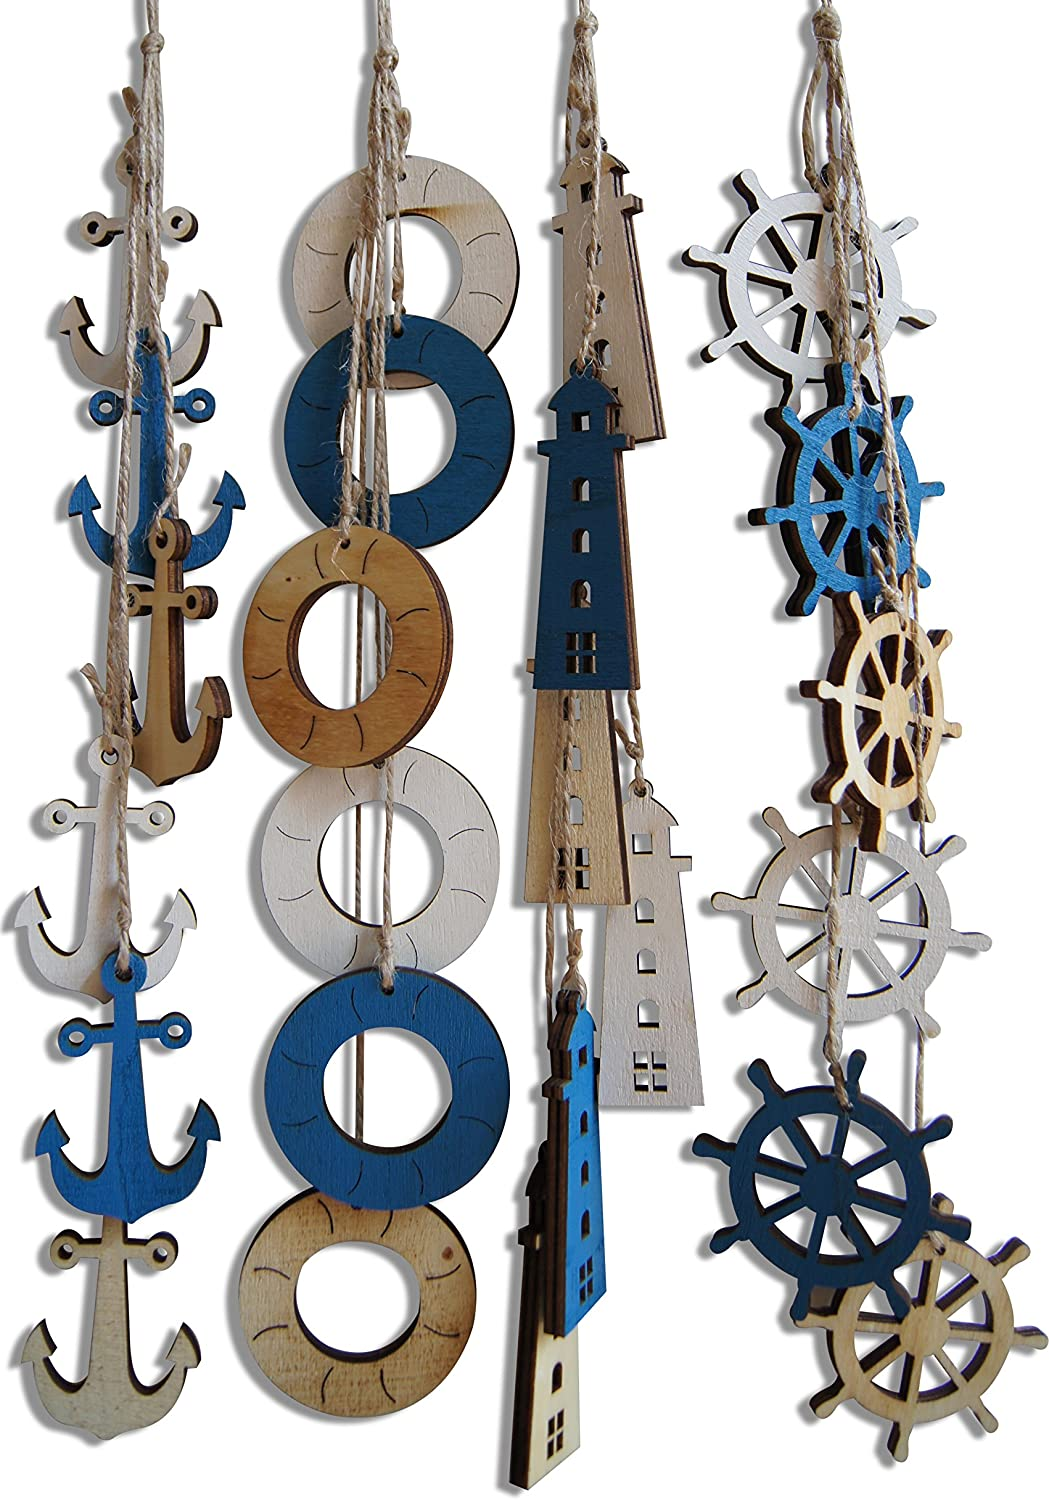 Shoreside Nautical Beach House Themed Decor Hangings with Tri-Color Anchors, Lighthouses, Captain's Wheel and Life Rings (4 Pieces)